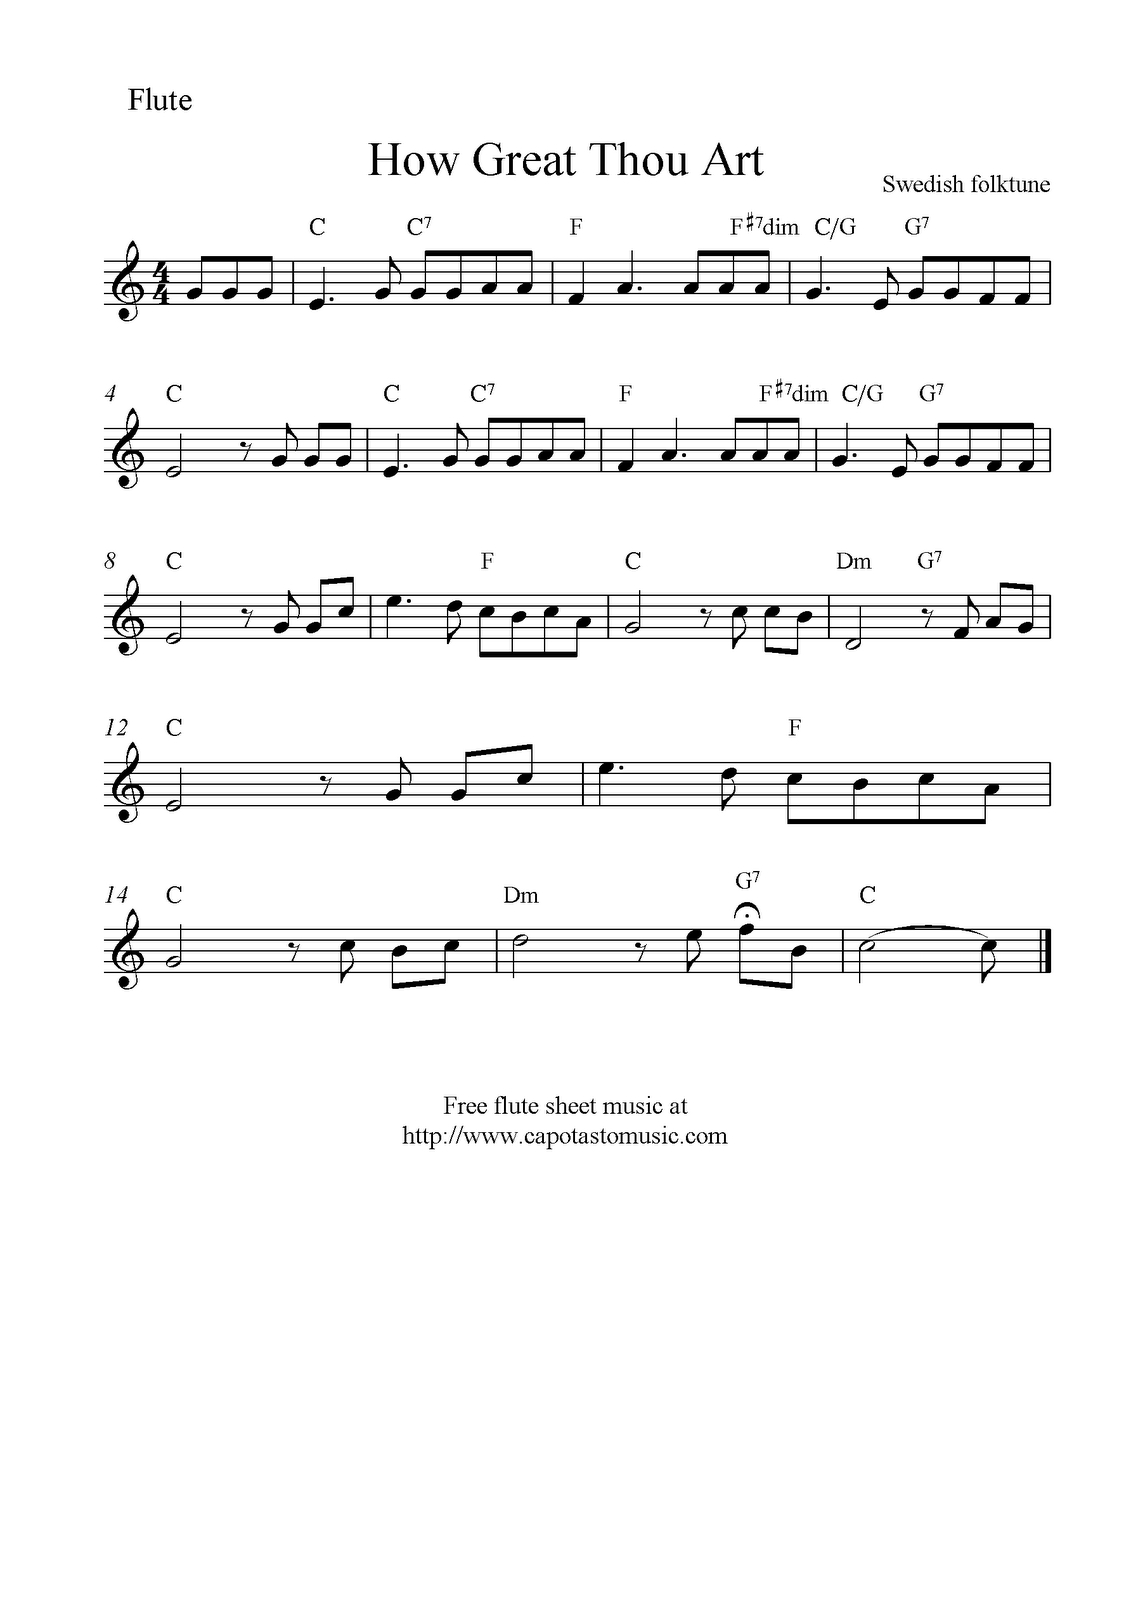 Christian Flute Sheet Music - Google Search | Christian Violin Sheet - Free Printable Flute Sheet Music For Pop Songs